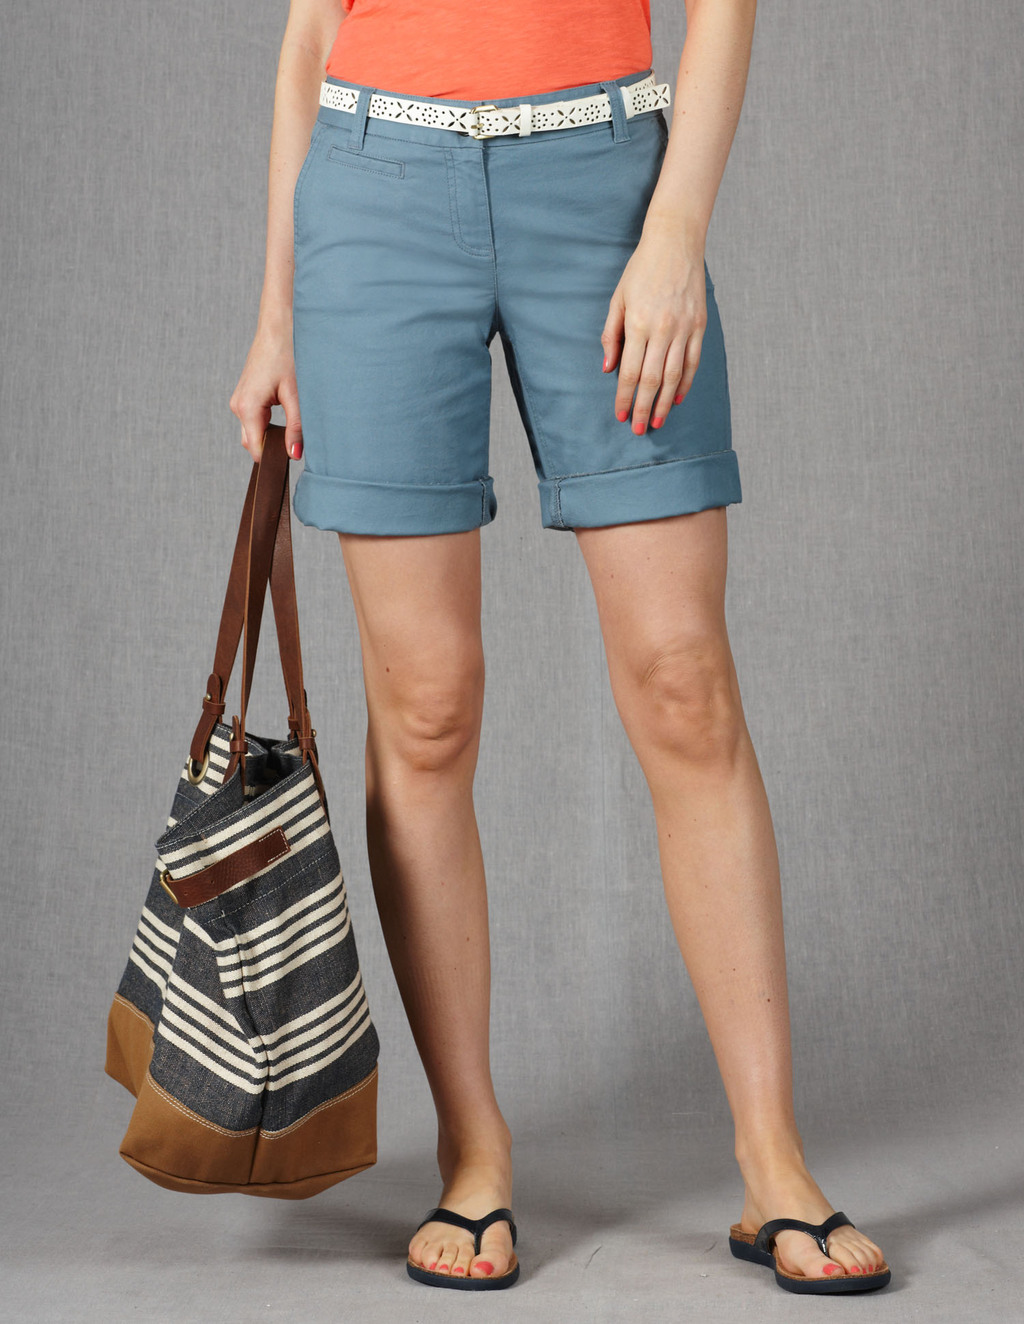 Off Duty Shorts - pattern: plain; waist detail: belted waist/tie at waist/drawstring; waist: mid/regular rise; predominant colour: denim; occasions: casual, holiday; fibres: cotton - stretch; texture group: cotton feel fabrics; pattern type: fabric; season: s/s 2013; pattern size: standard (bottom); style: shorts; length: mid thigh shorts; fit: slim leg; wardrobe: holiday